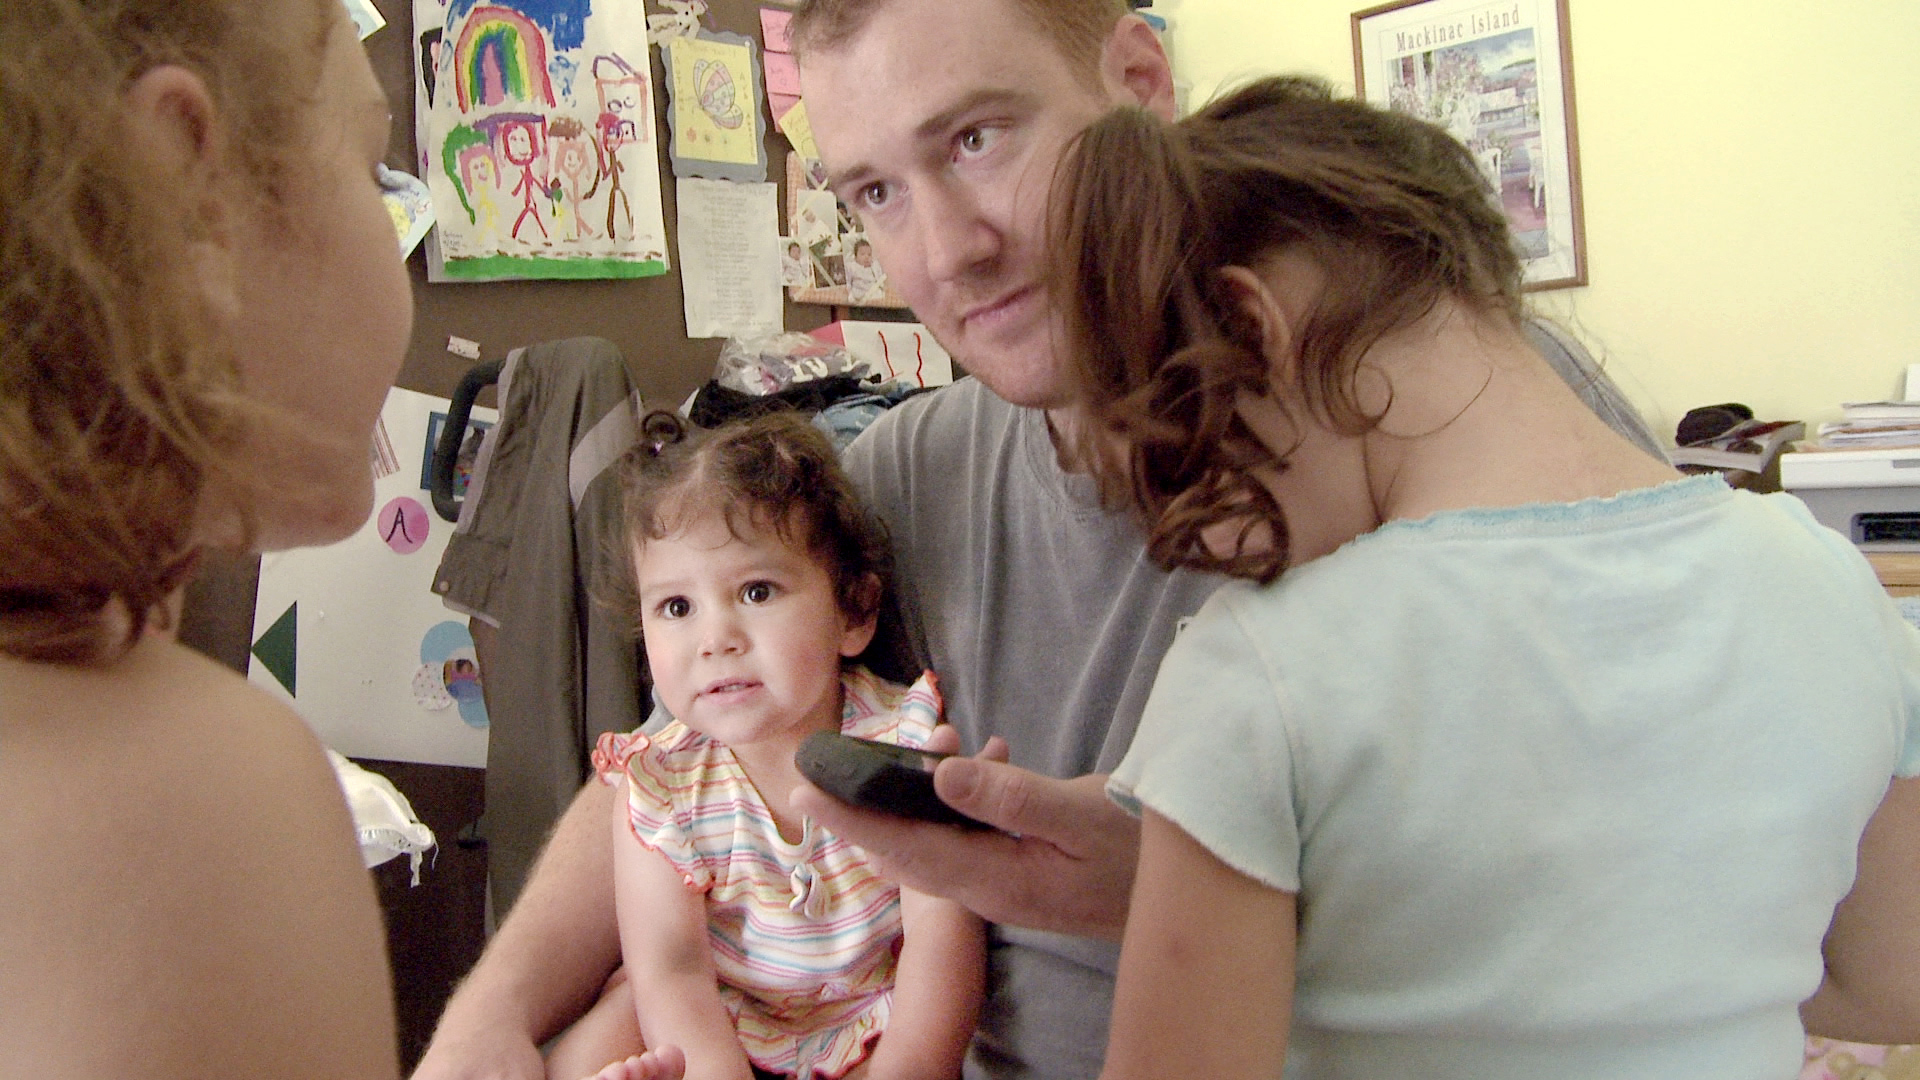 Cindy Shank's then-husband, Adam, with their kids, talking to Cindy on the phone. Courtesy of HBO